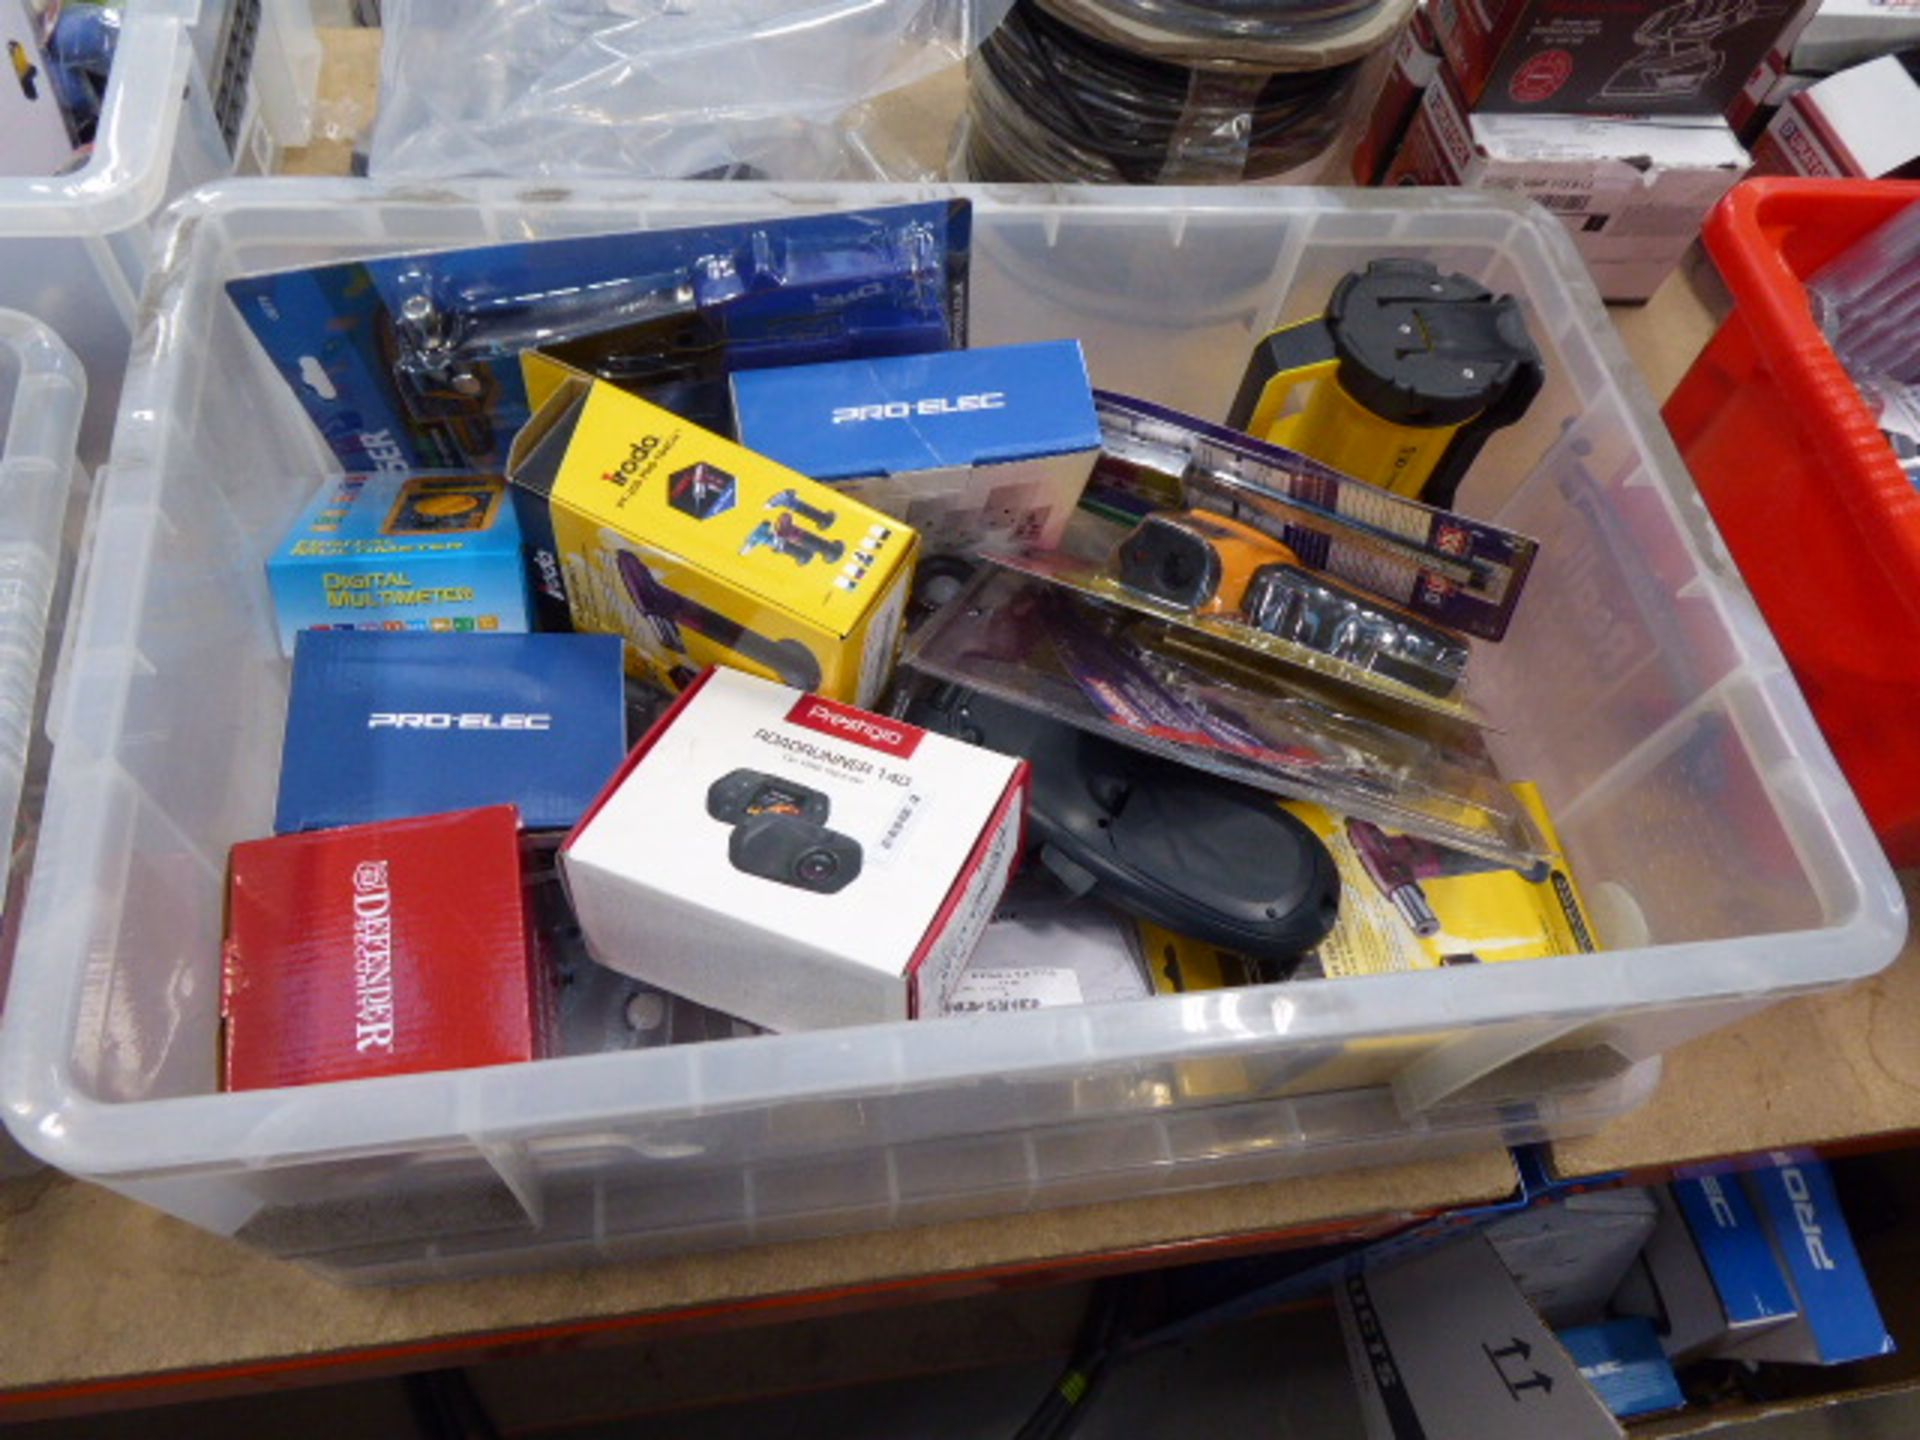 Large box containing locking pliers, wireless sockets, multimeters, security cameras, extension